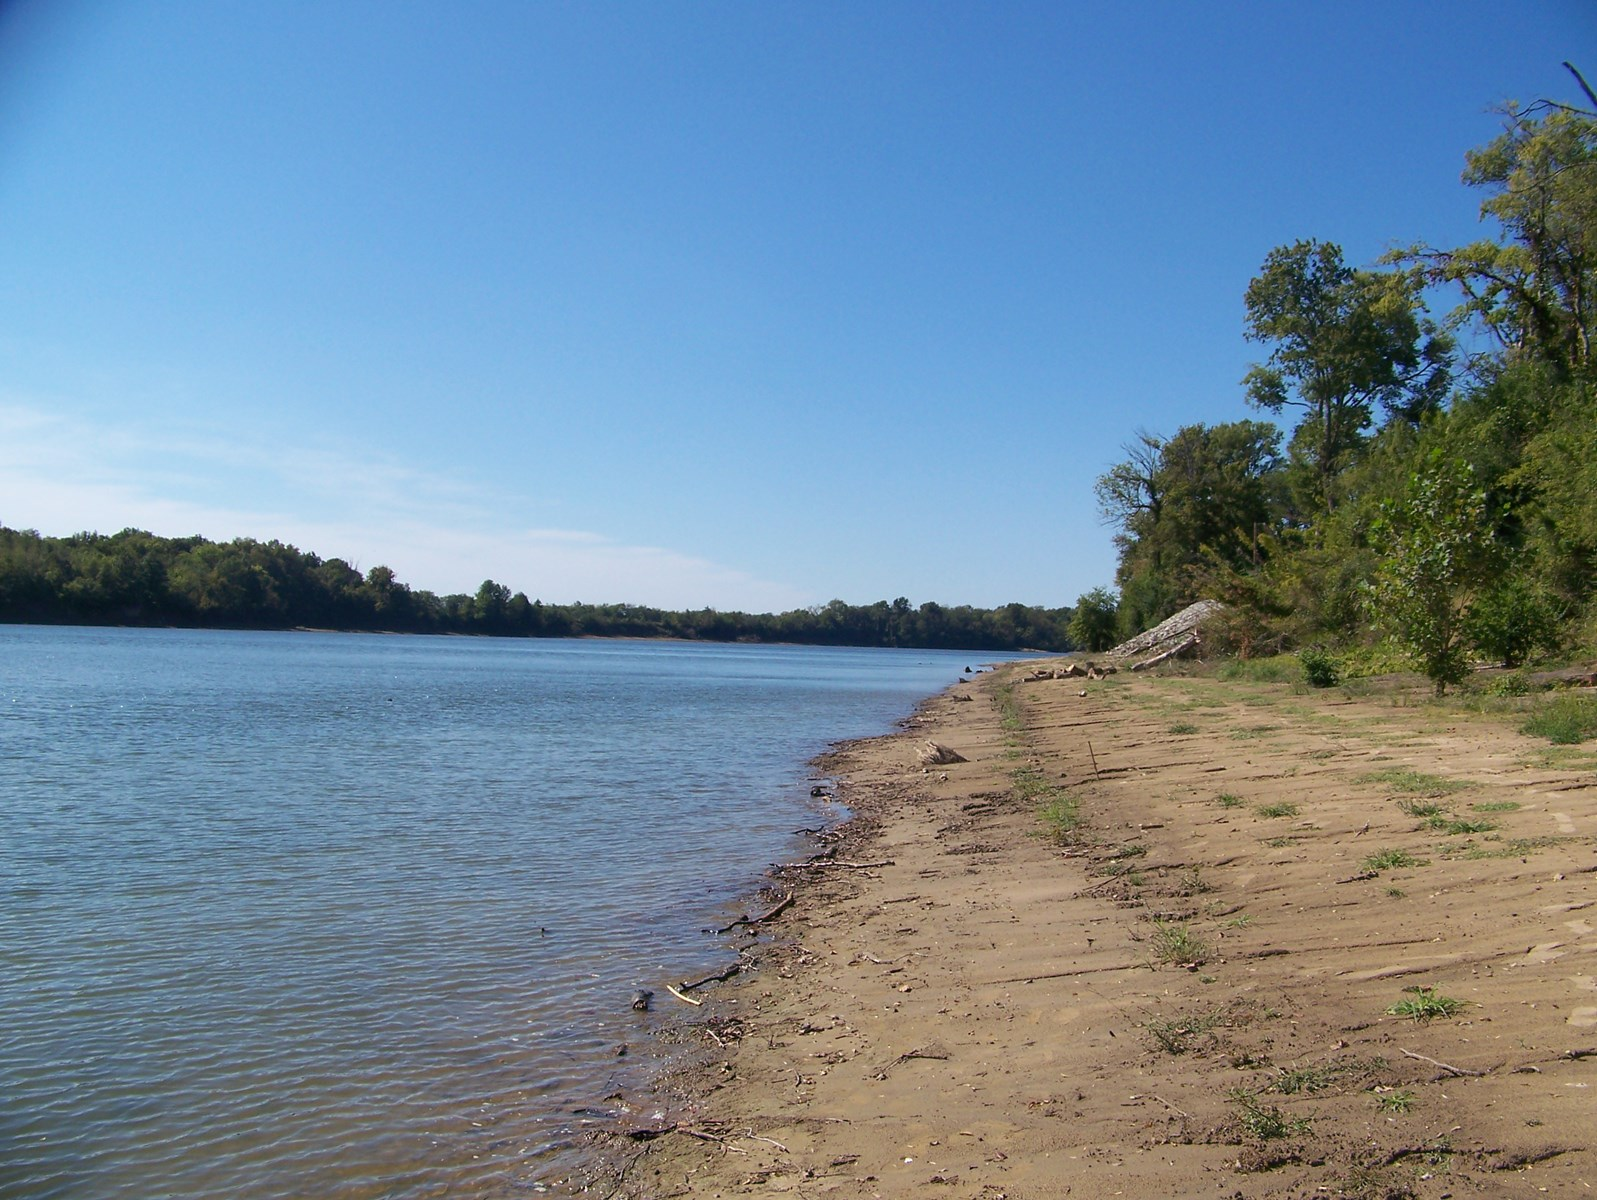 WATERFRONT LAND FOR SALE ON THE TENNESSEE RIVER